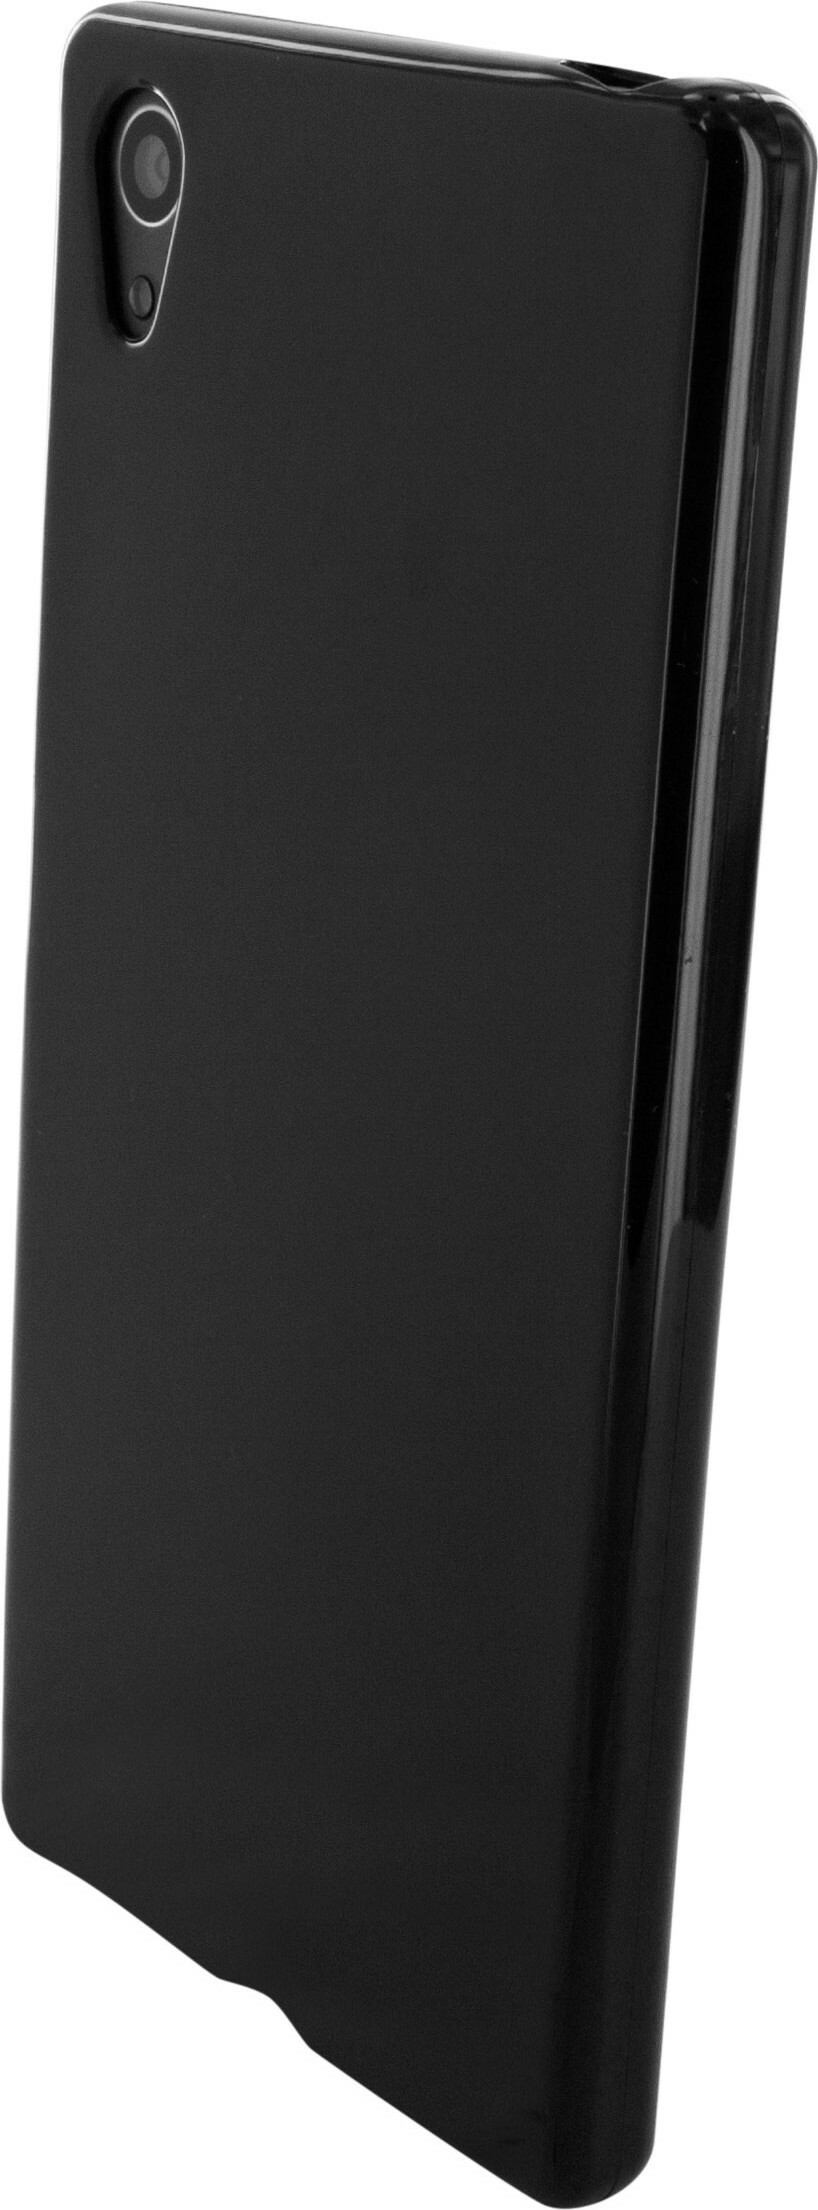 Mobiparts Classic TPU Case Sony Xperia Z5 Black